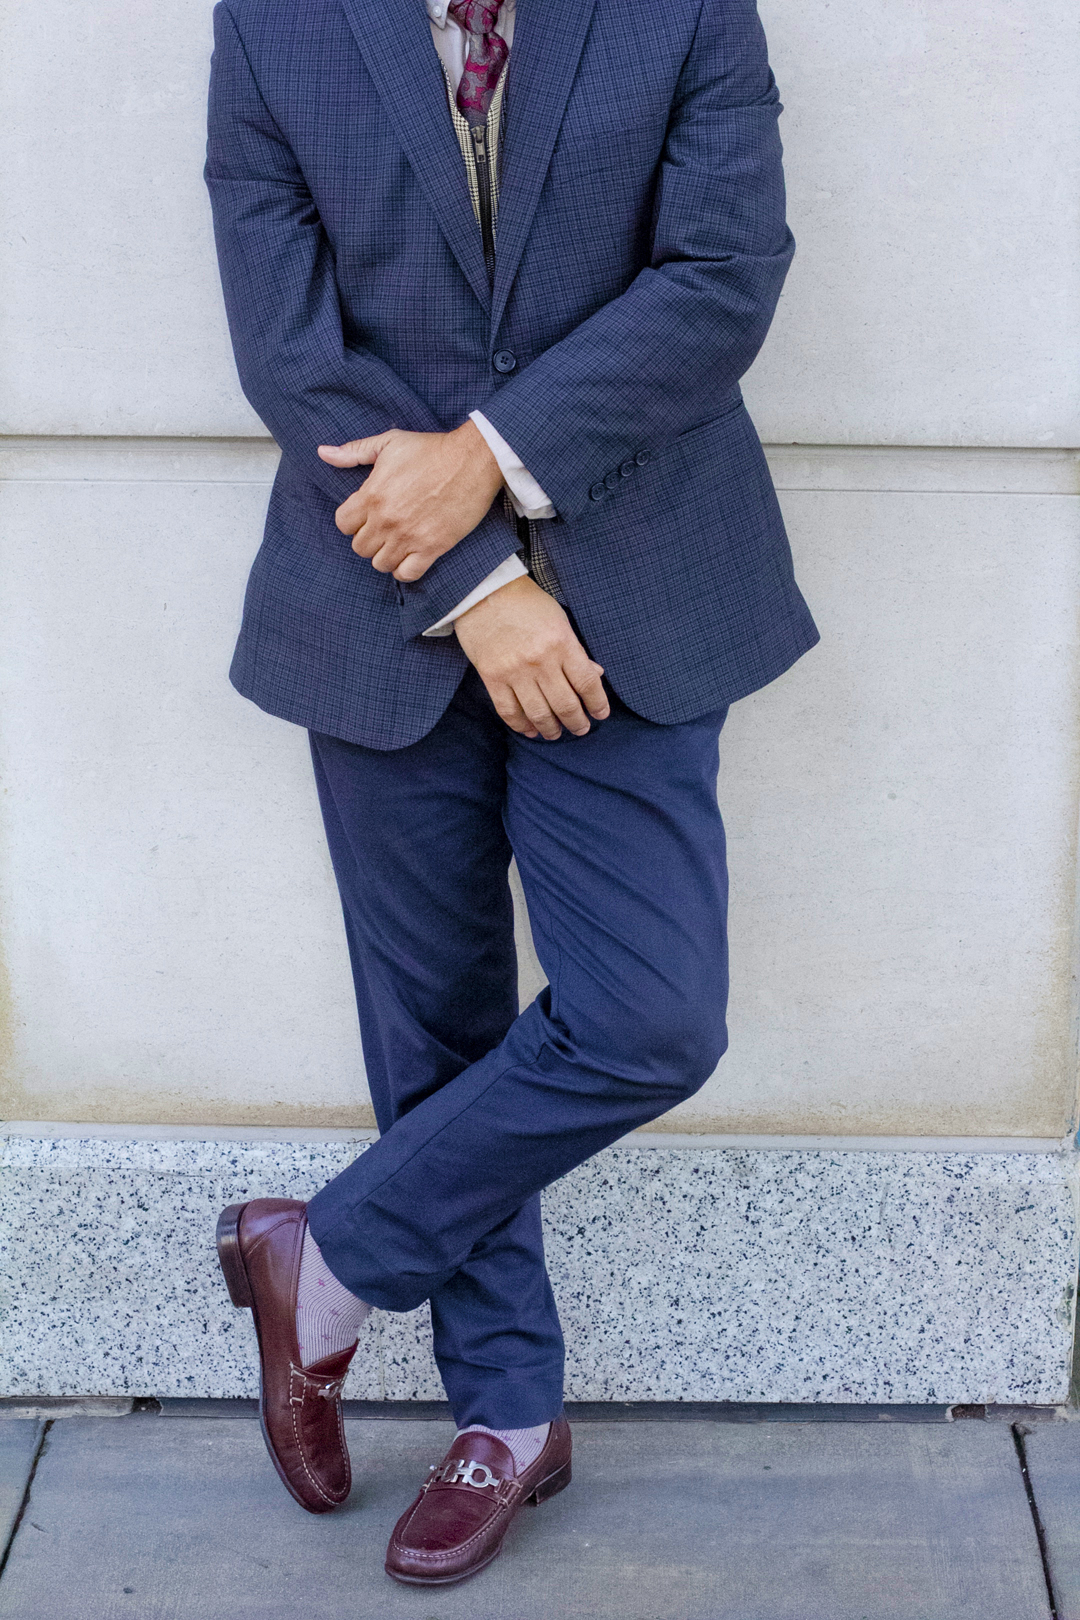 patterned suit vest and tie outfit